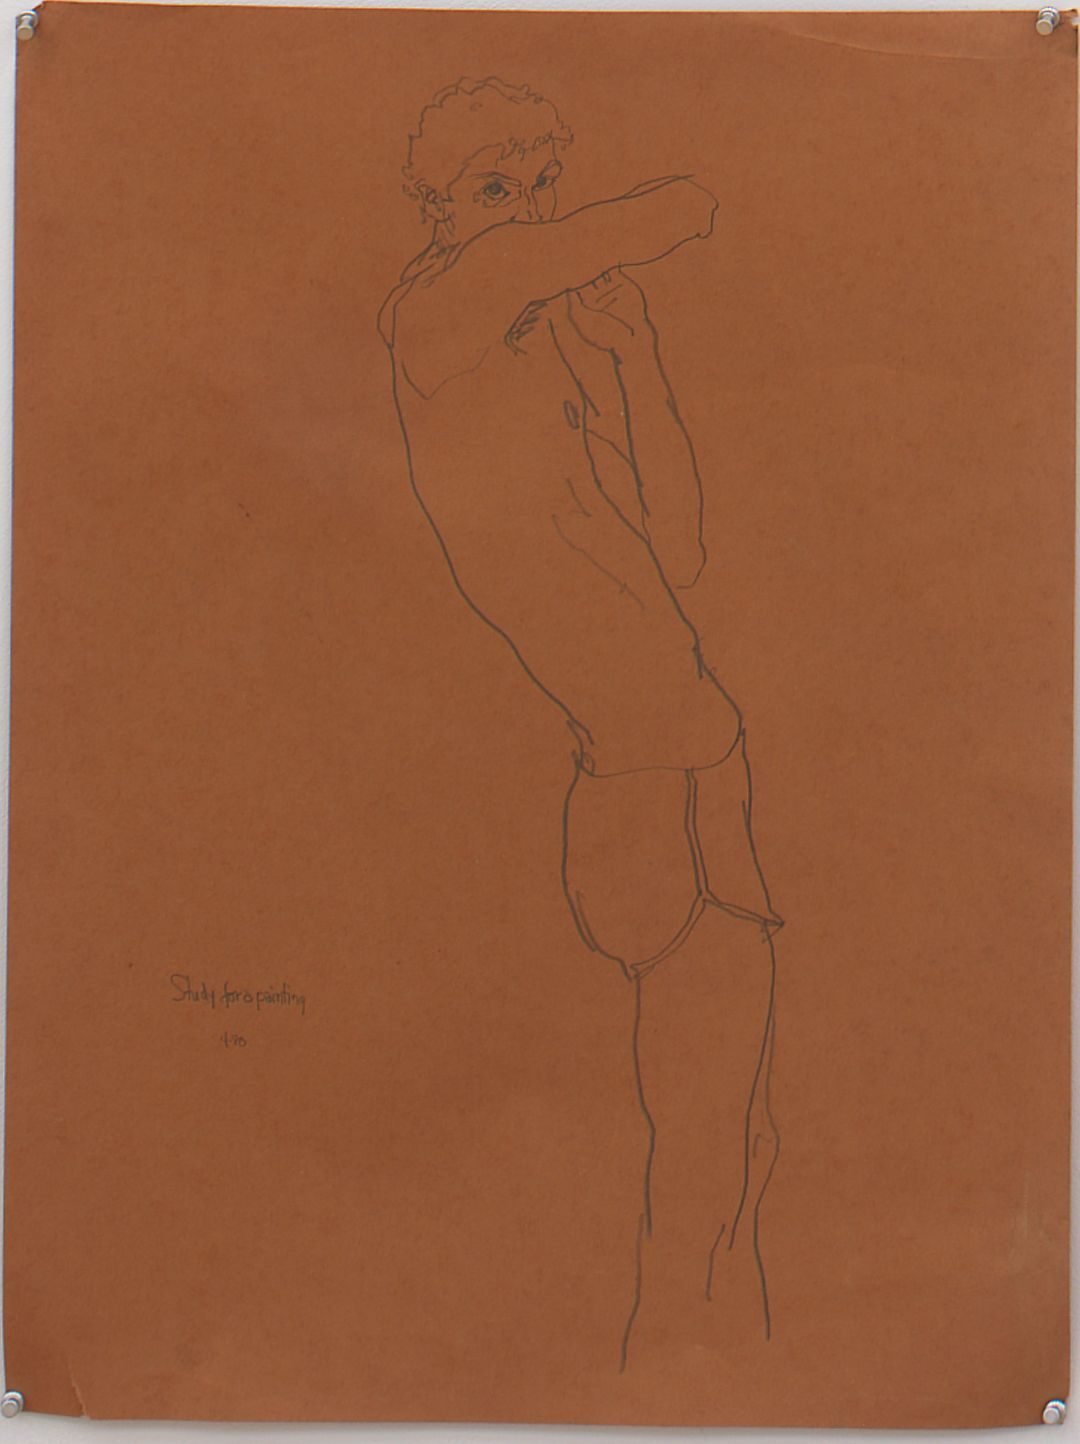 Study for Unfinished Painting, 1980, Pencil on paper